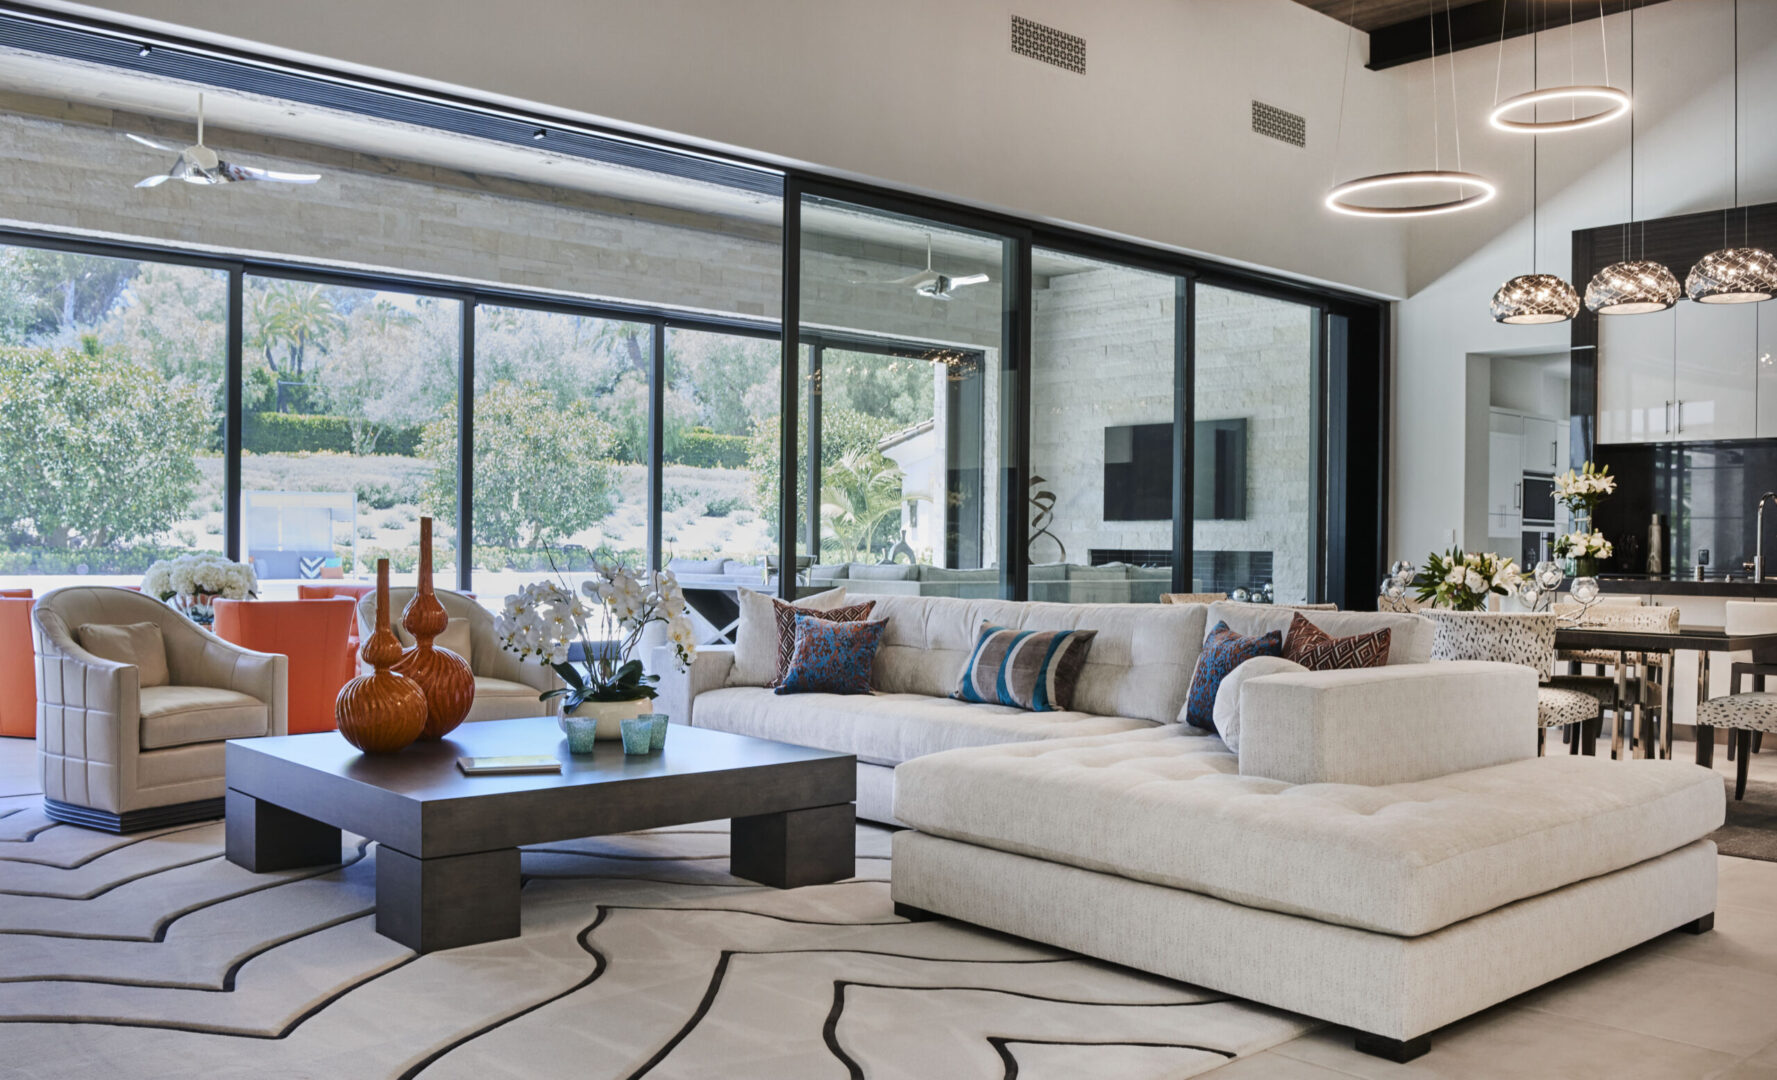 Living room with white furnishings